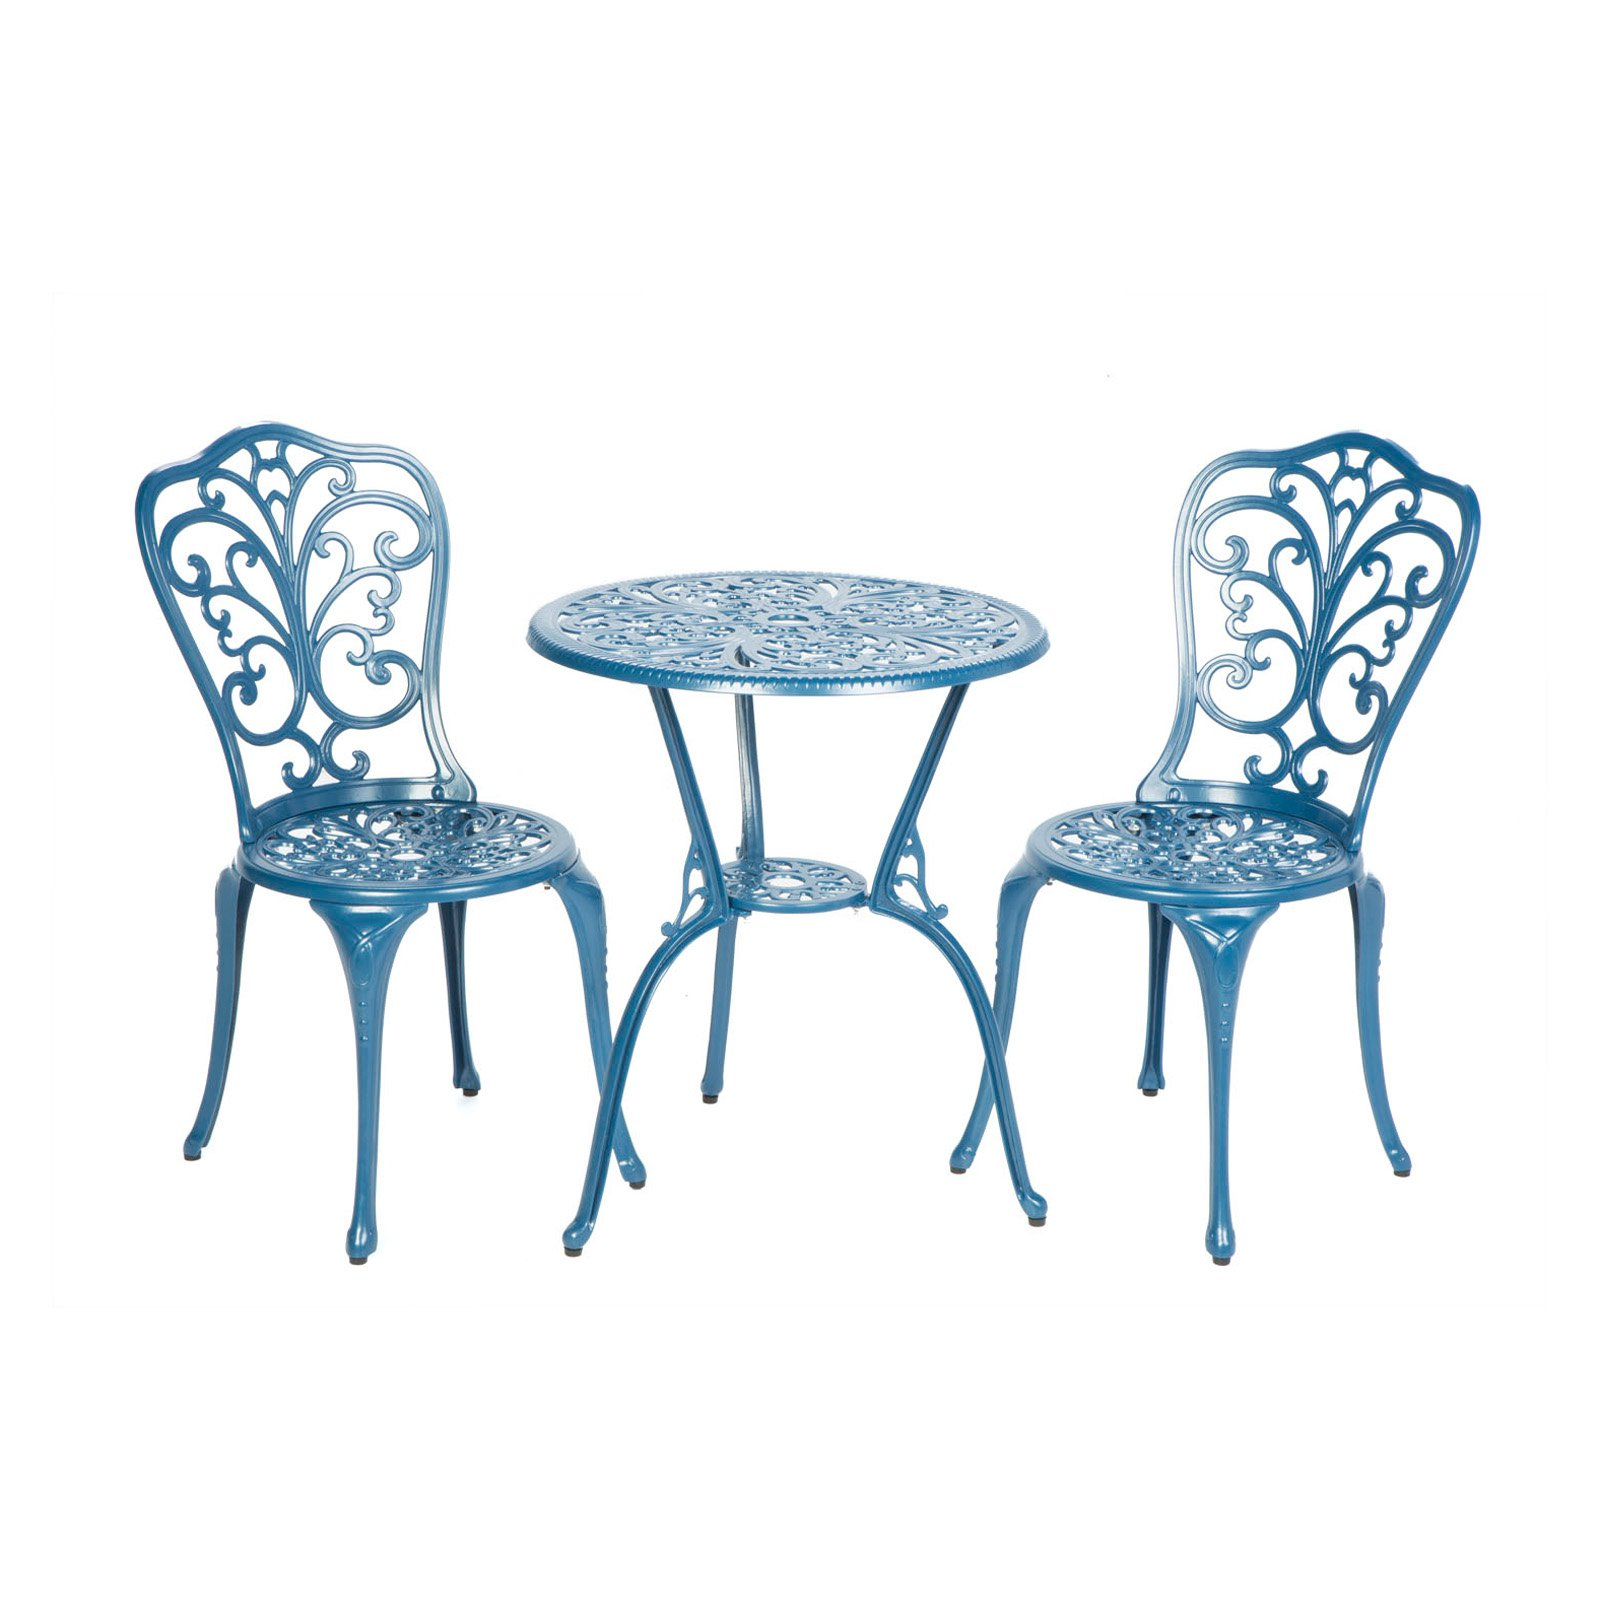 Alfresco Triora Cast Aluminum 3 Piece Bistro Set